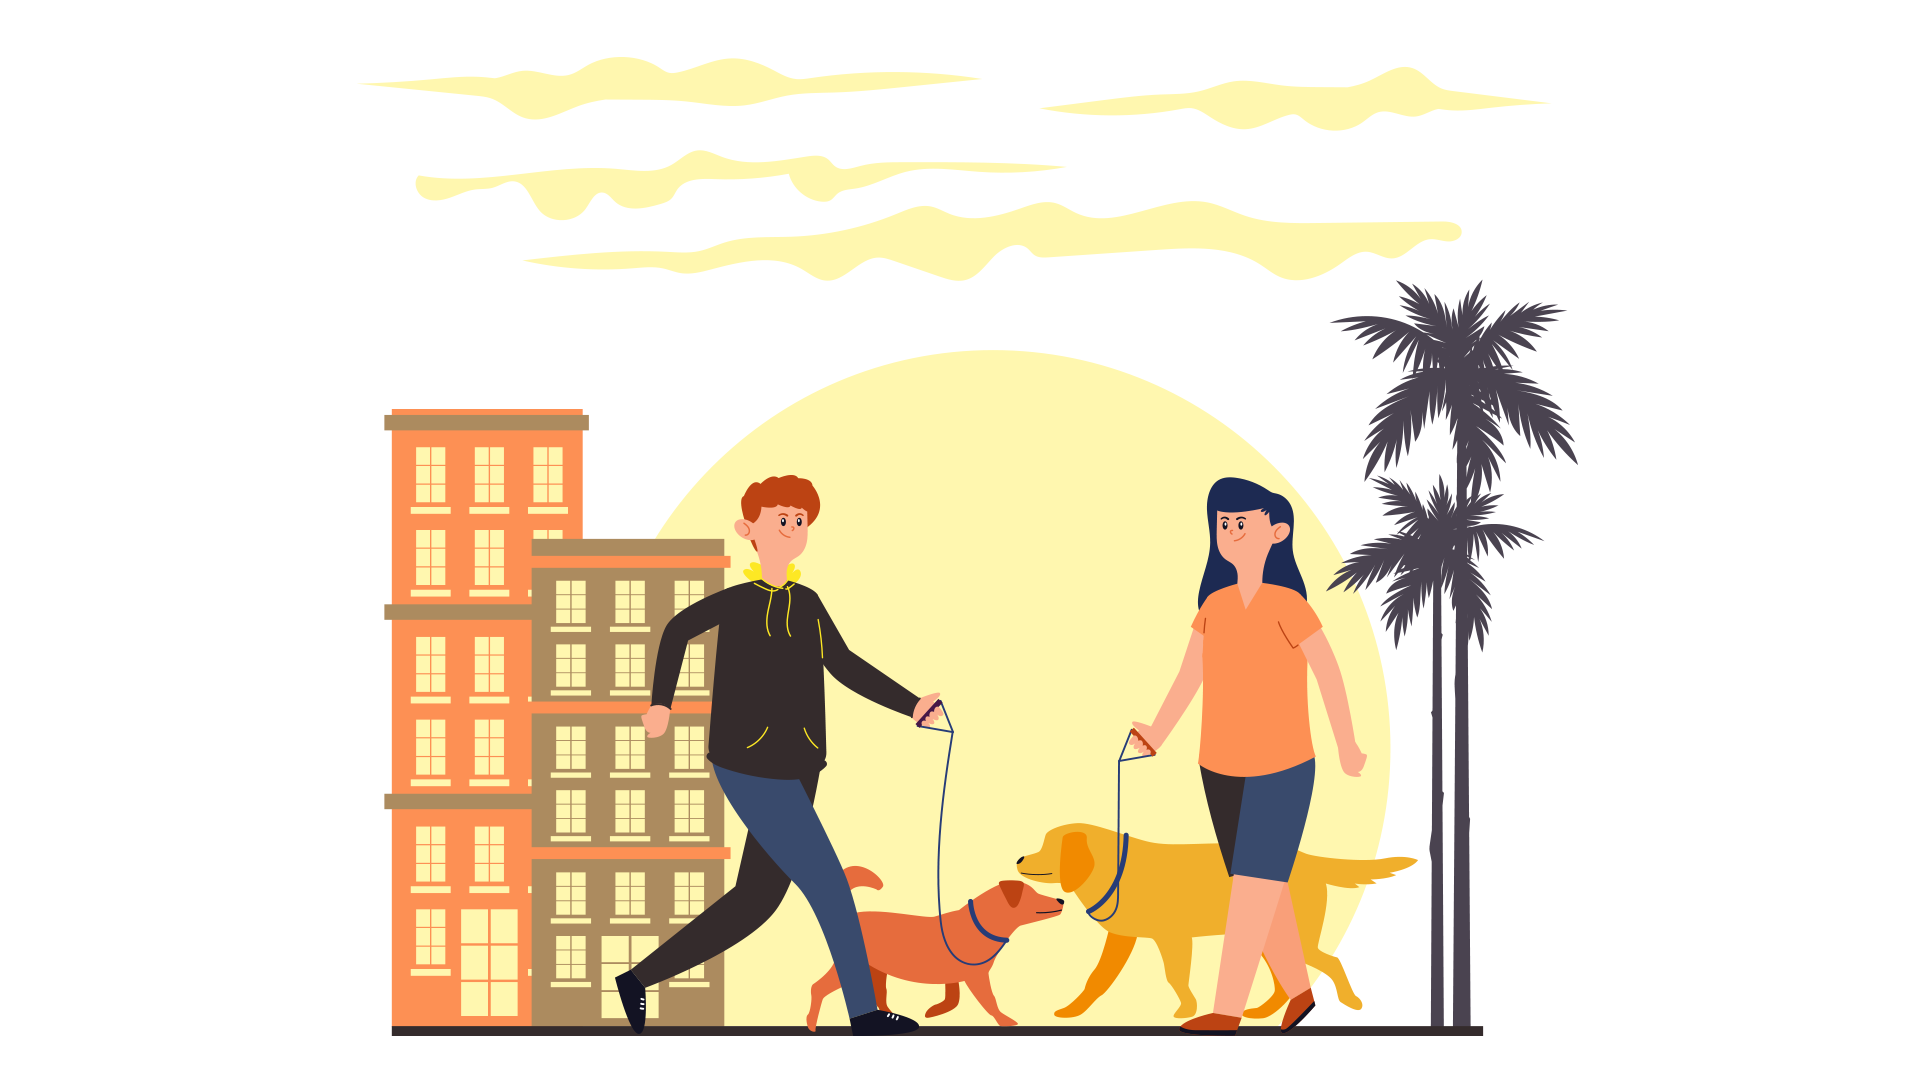 The dog walking app market has expanded substantially in recent years and will generate impressive revenues for businesses in the future.